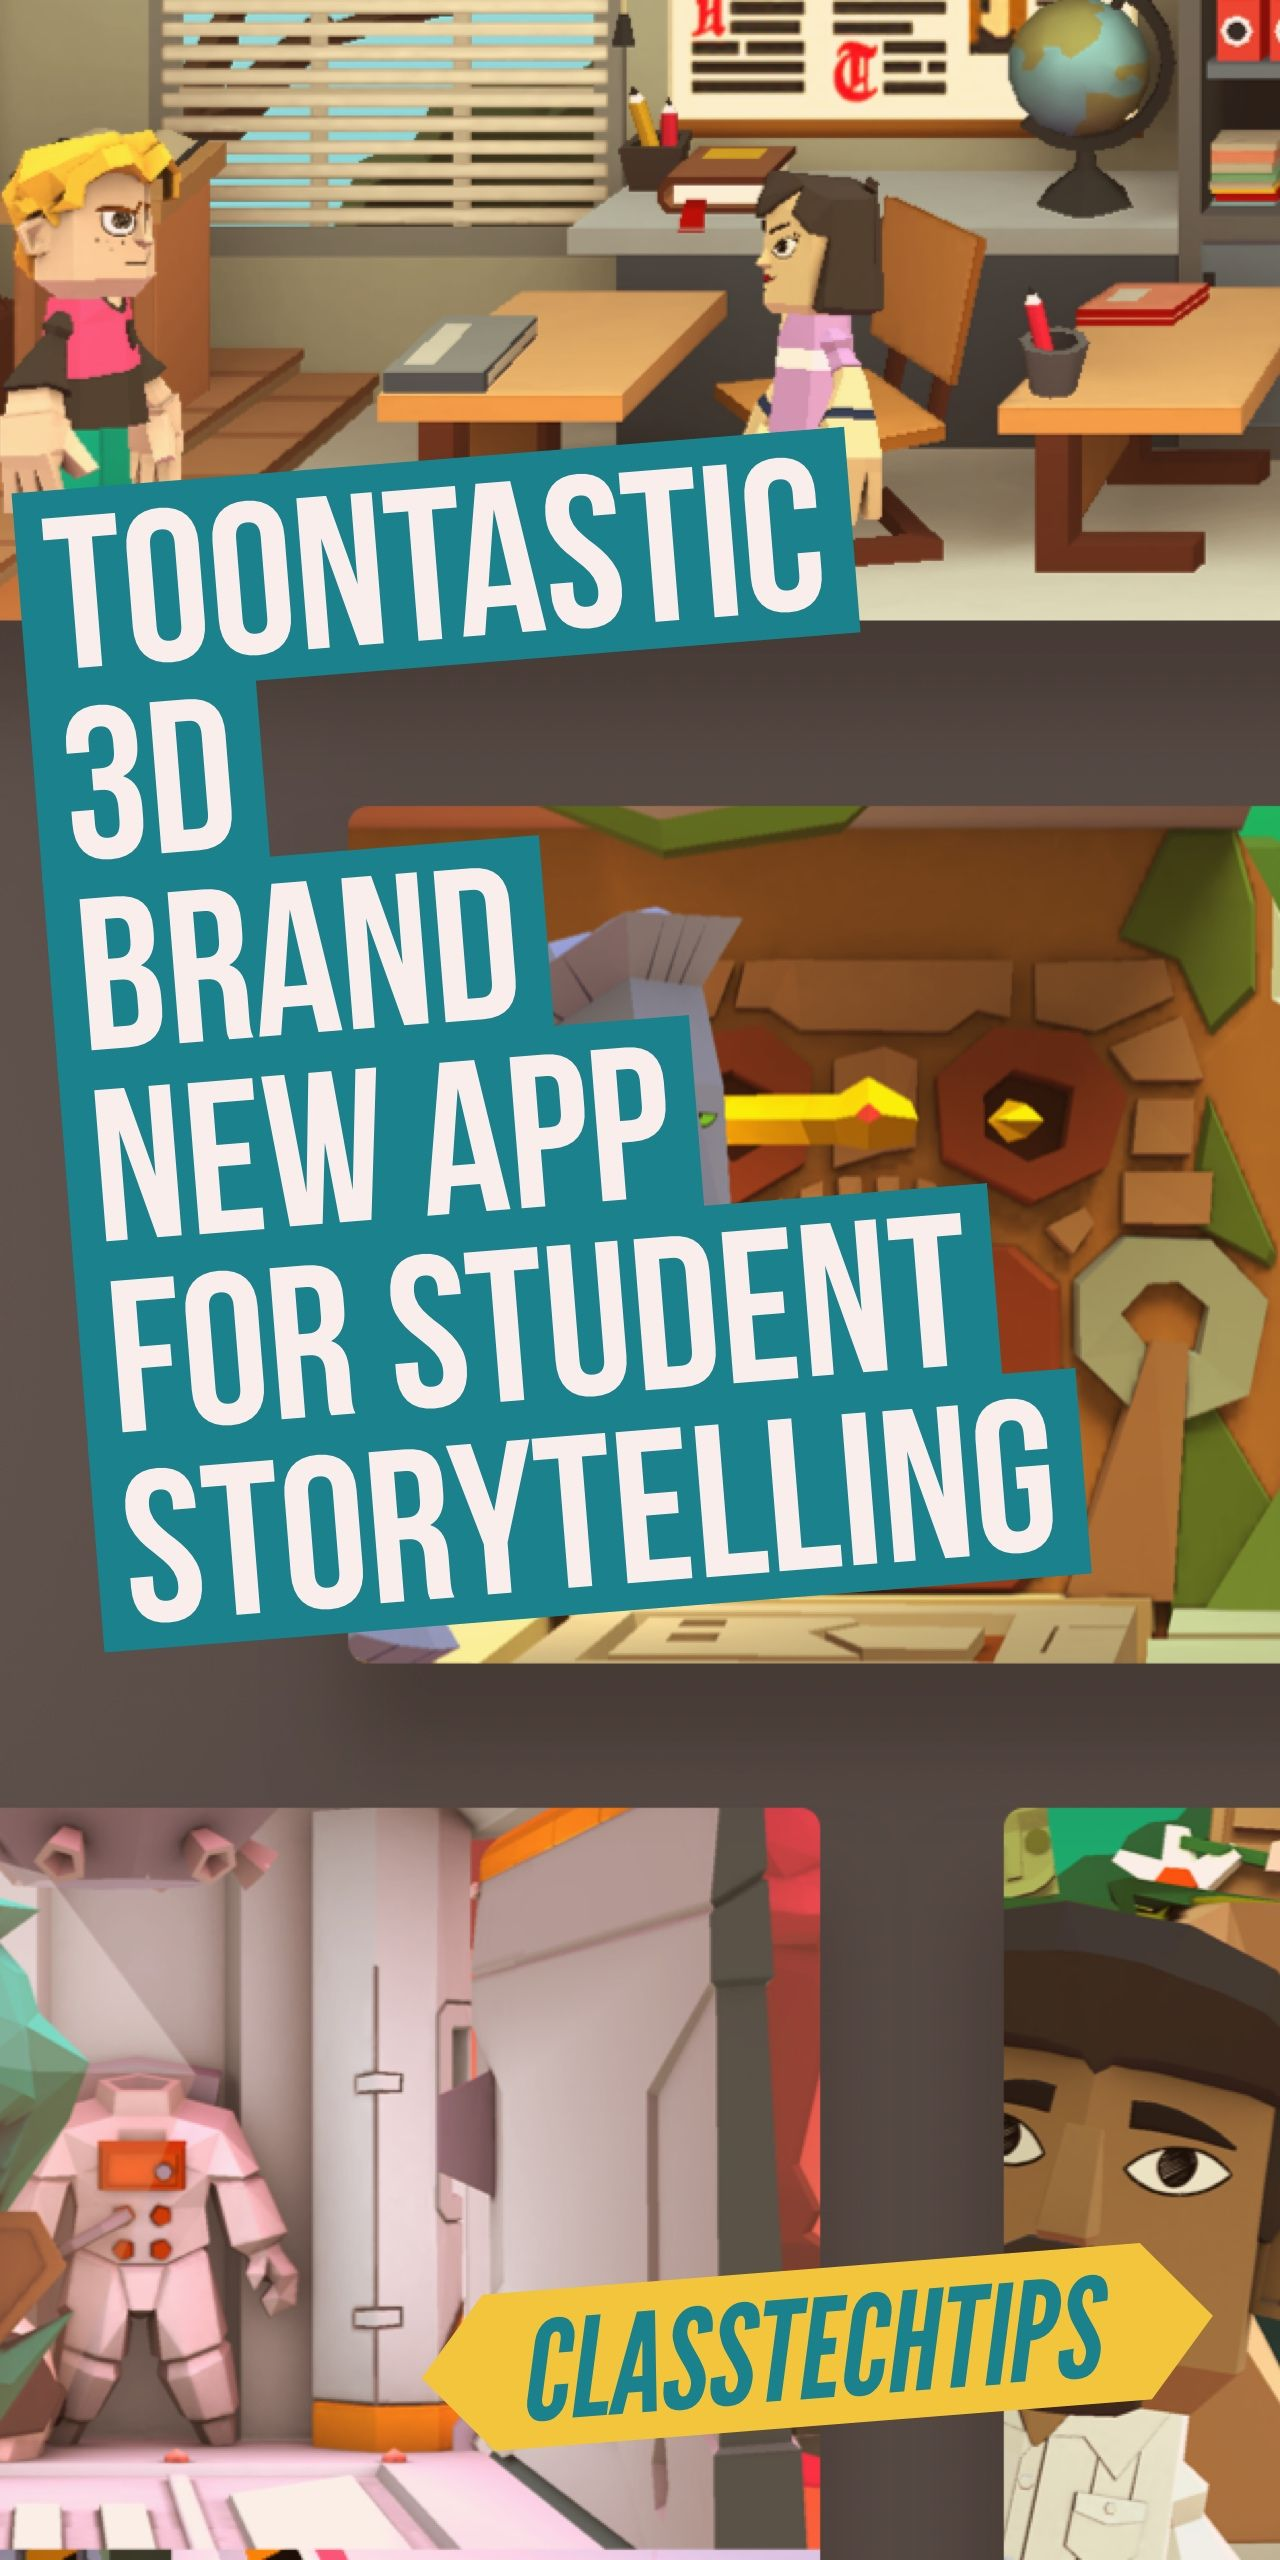 Toontastic 3D Brand New App for Student Storytelling App